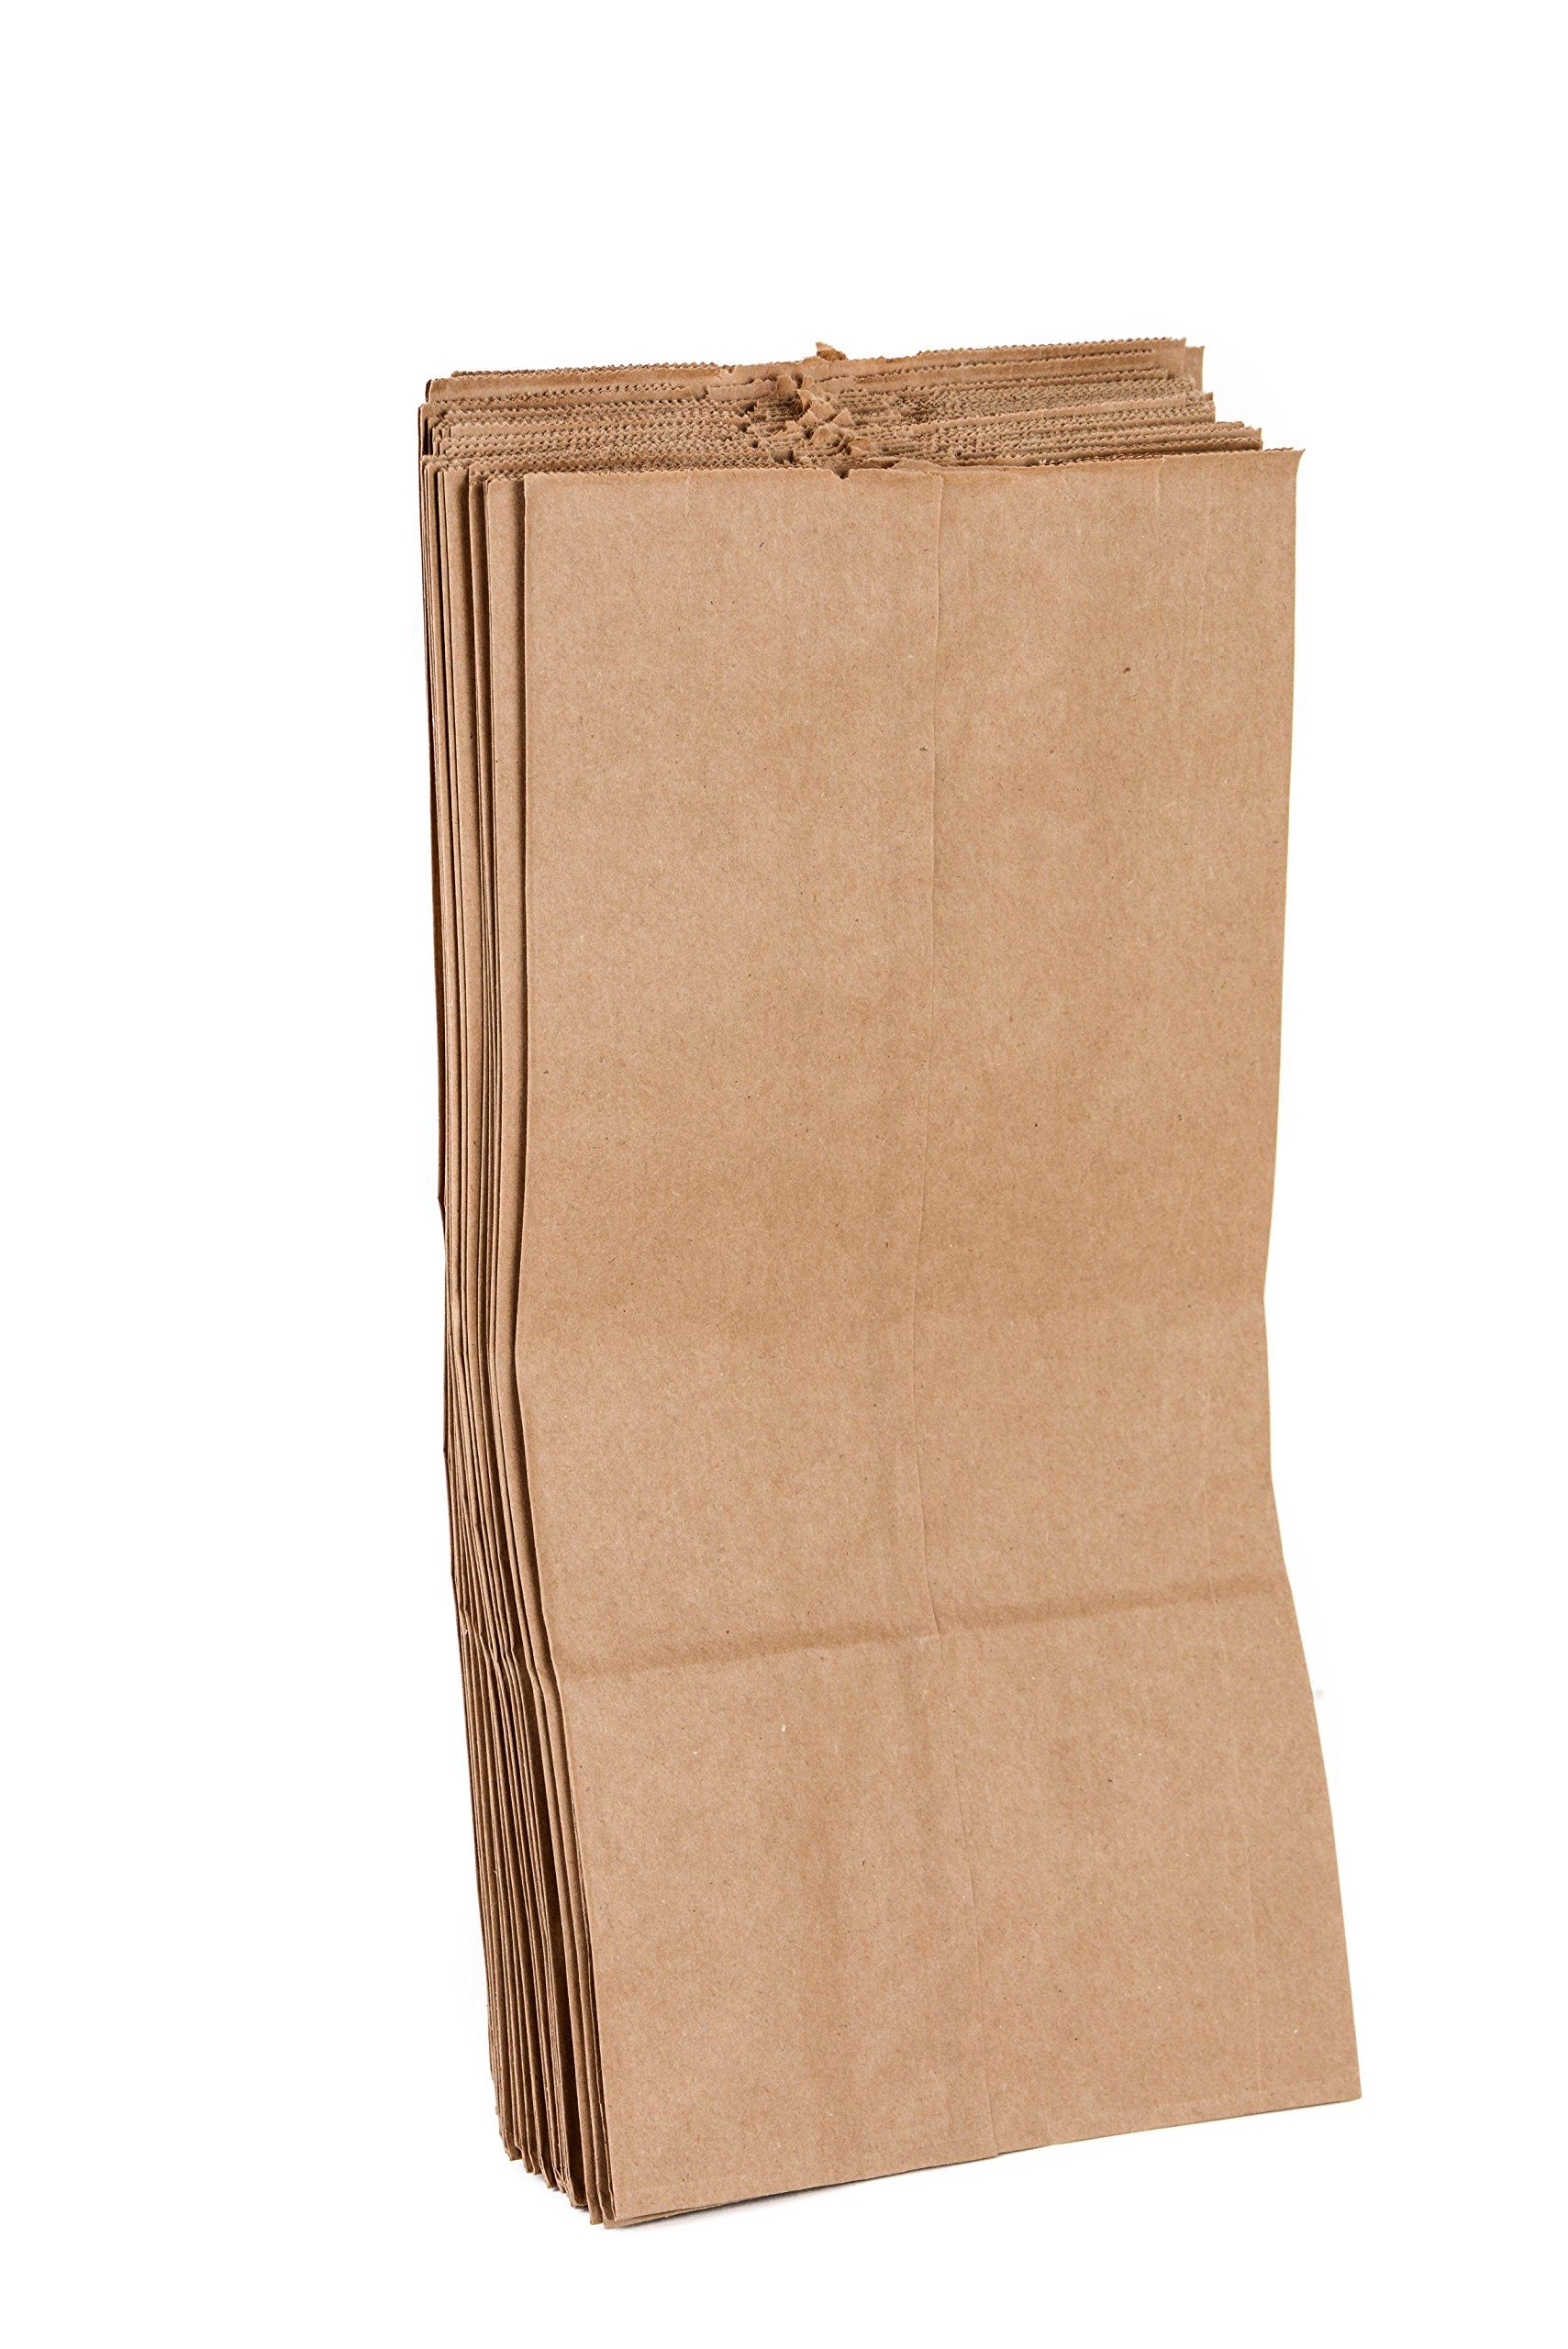 EcoQuality 1000 Brown Kraft Paper Bag (10 lb) Medium - Paper Lunch Bags, Small Snacks, Gift Bags, Grocery, Merchandise, Party Bags (6-5/16 x 4-3/16 x 13-3/8) (10 Pound Capacity) by EcoQuality (Image #3)